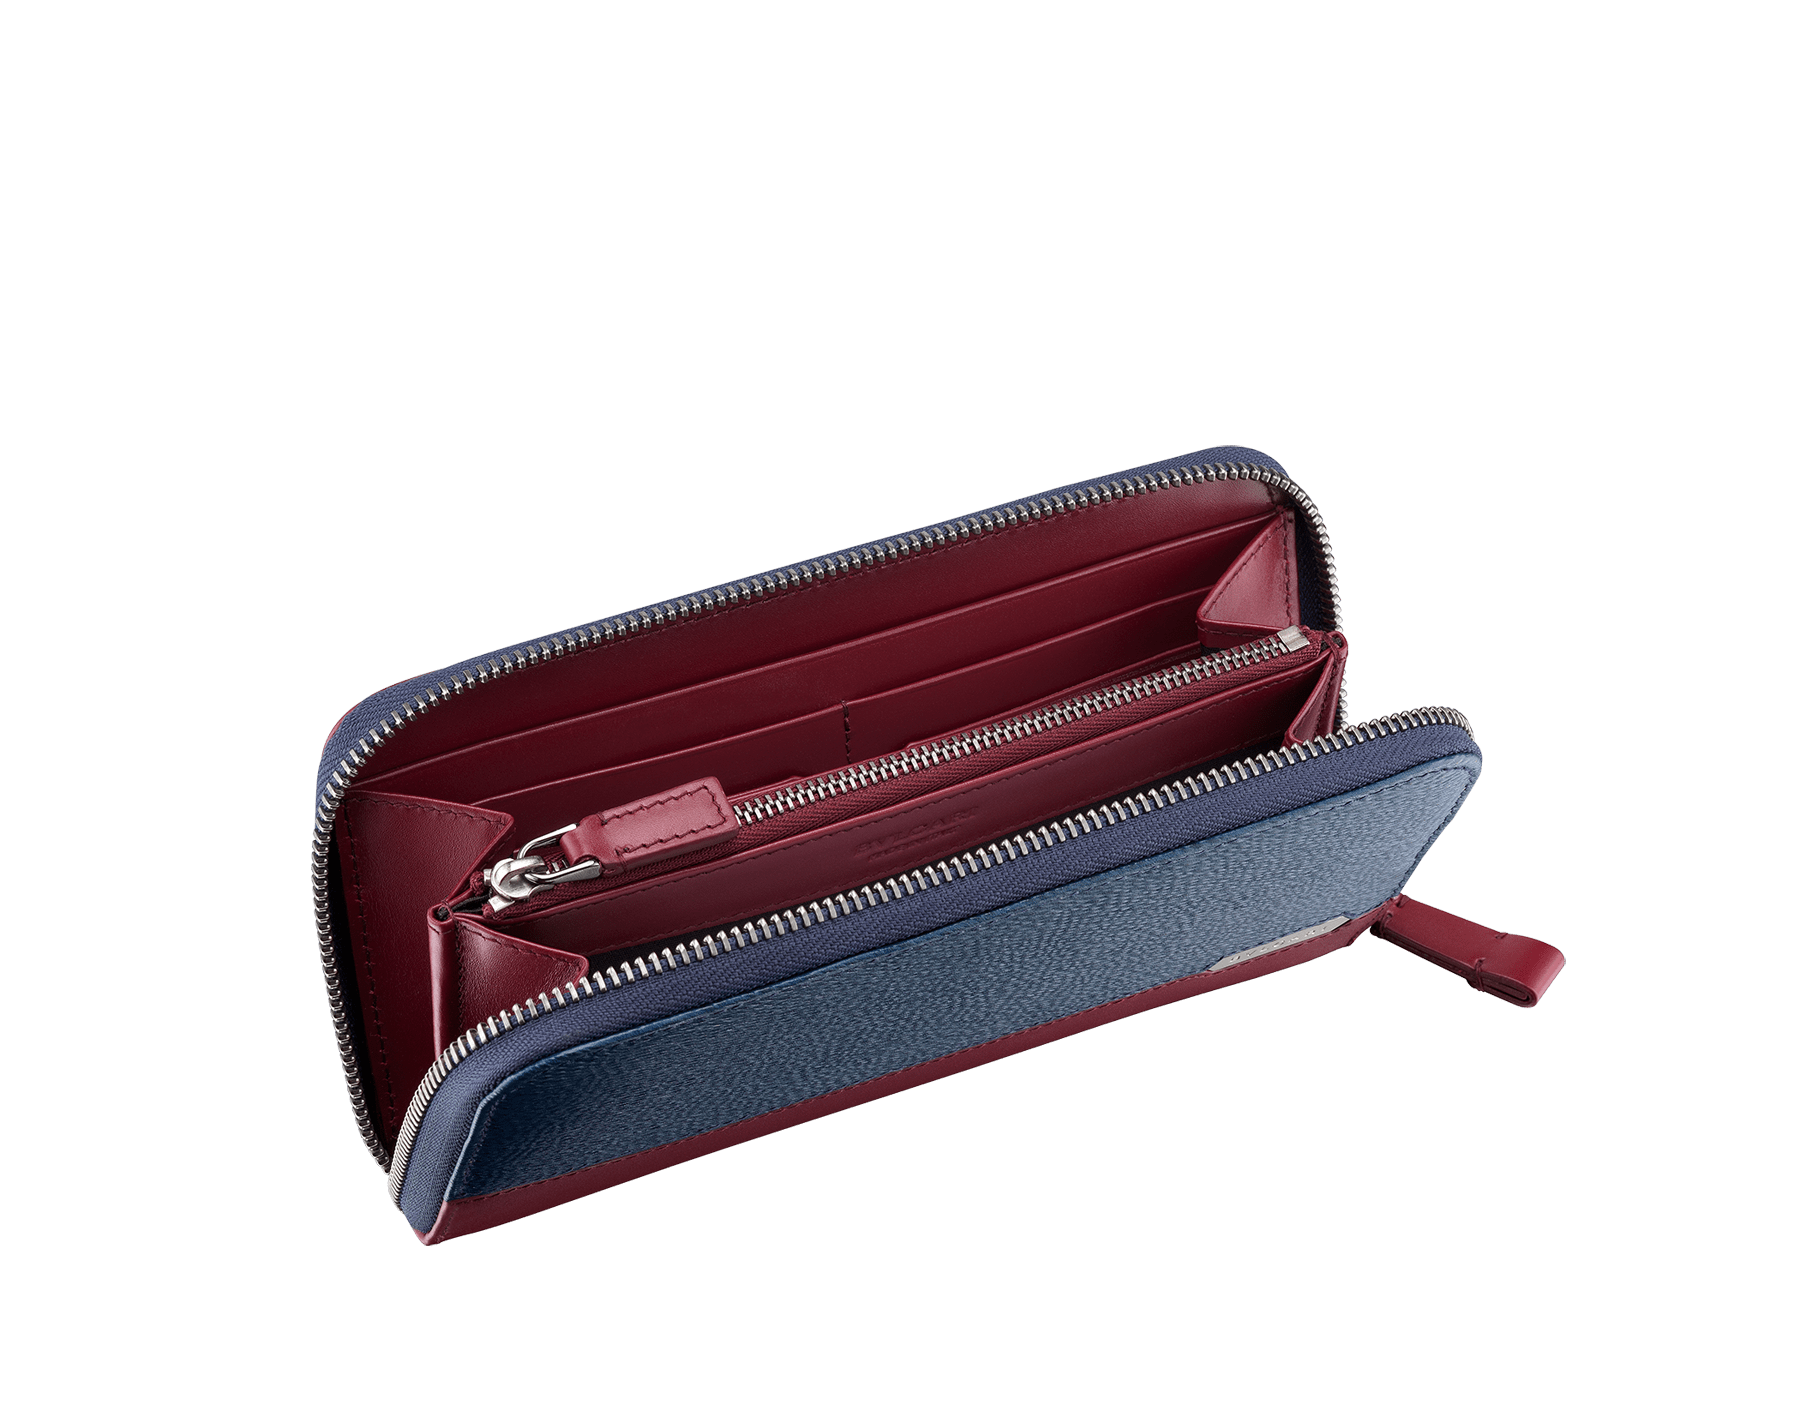 Serpenti Scaglie men's zipped wallet in denim sapphire grazed calf leather and roman garnet calf leather. Bvlgari logo engraved on the hexagonal scaglie metal plate finished in dark ruthenium. 288343 image 2